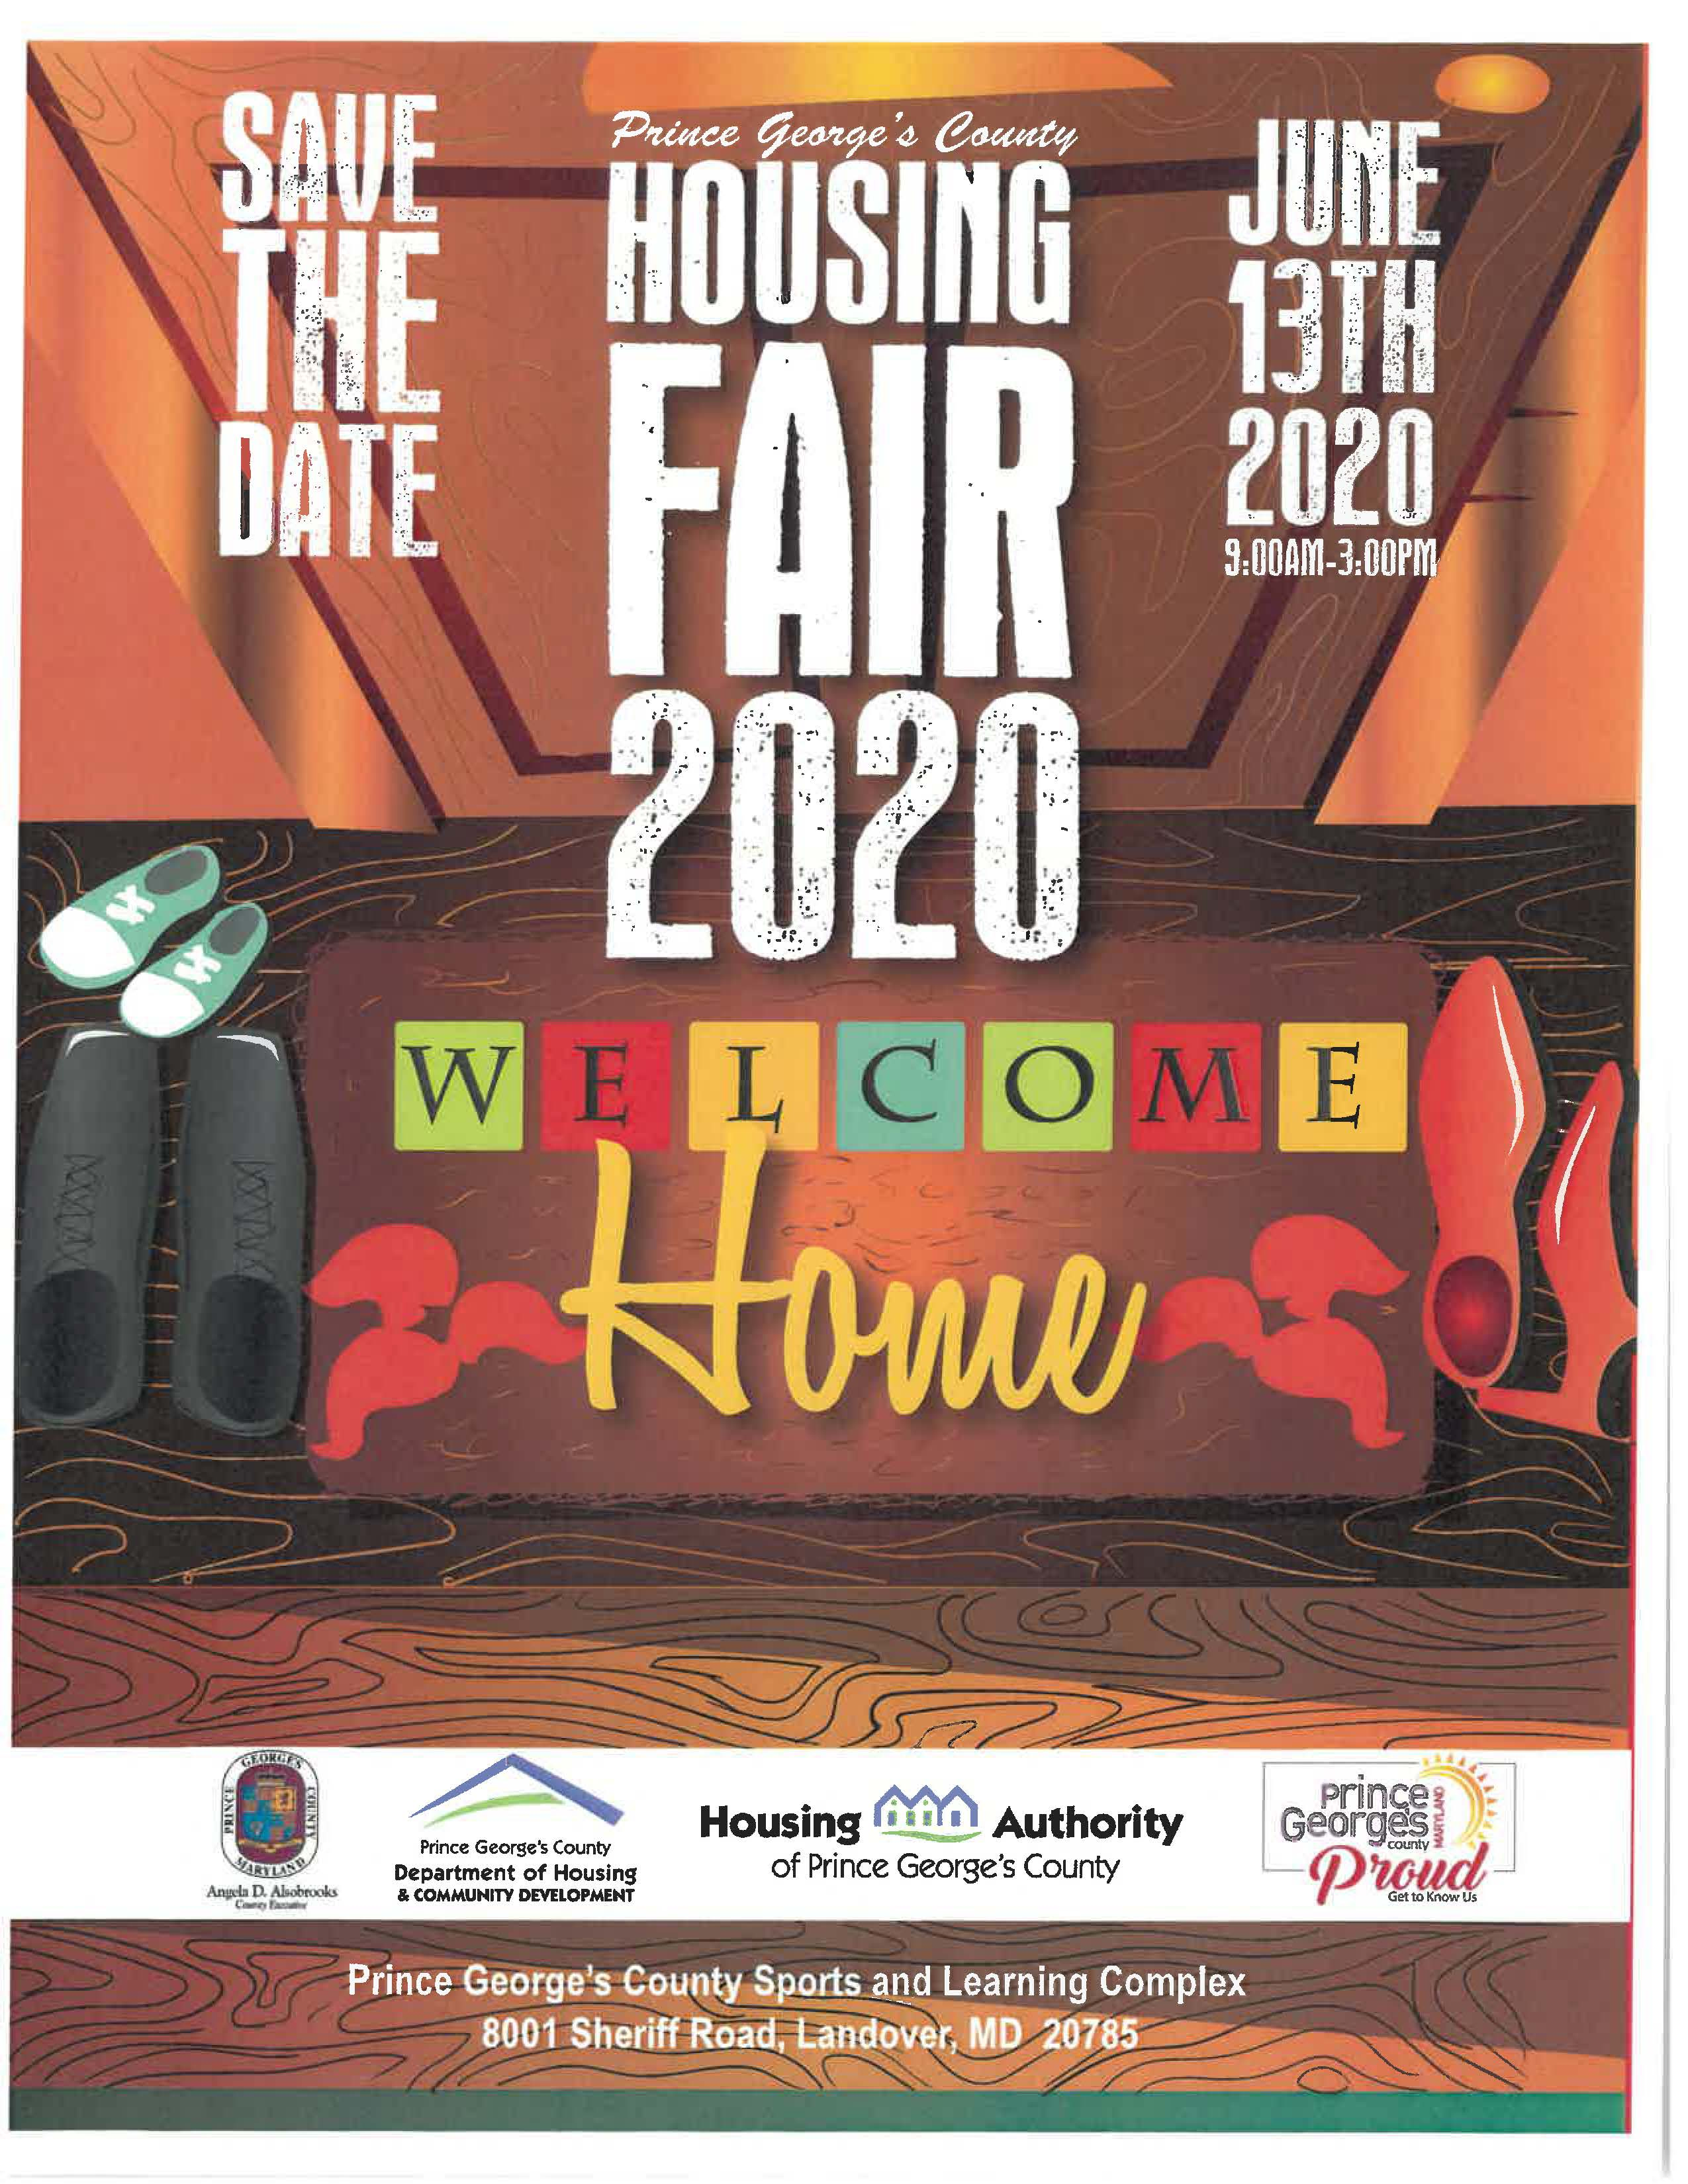 2020 Housing Fair - Save the Date Flyer